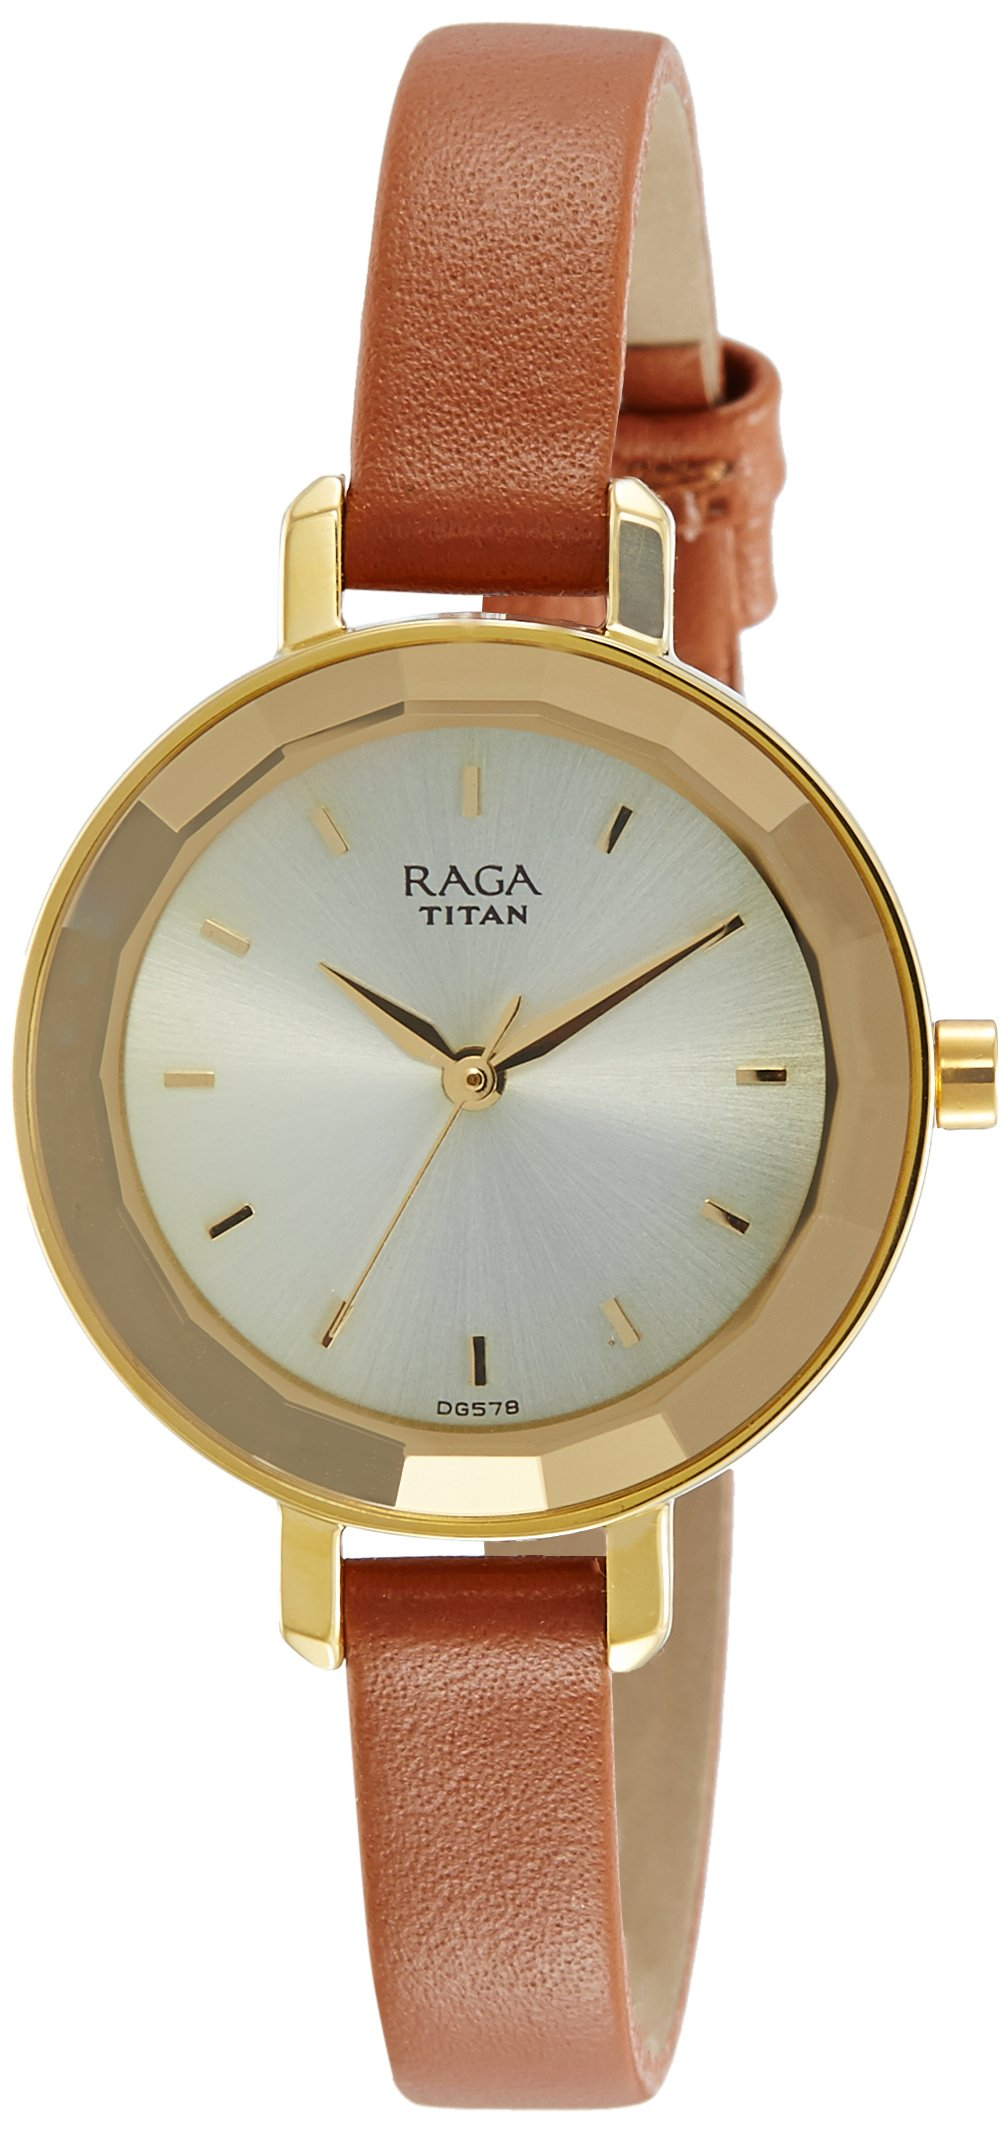 Titan Raga Viva Analog Beige Dial Women's Wrist Watch